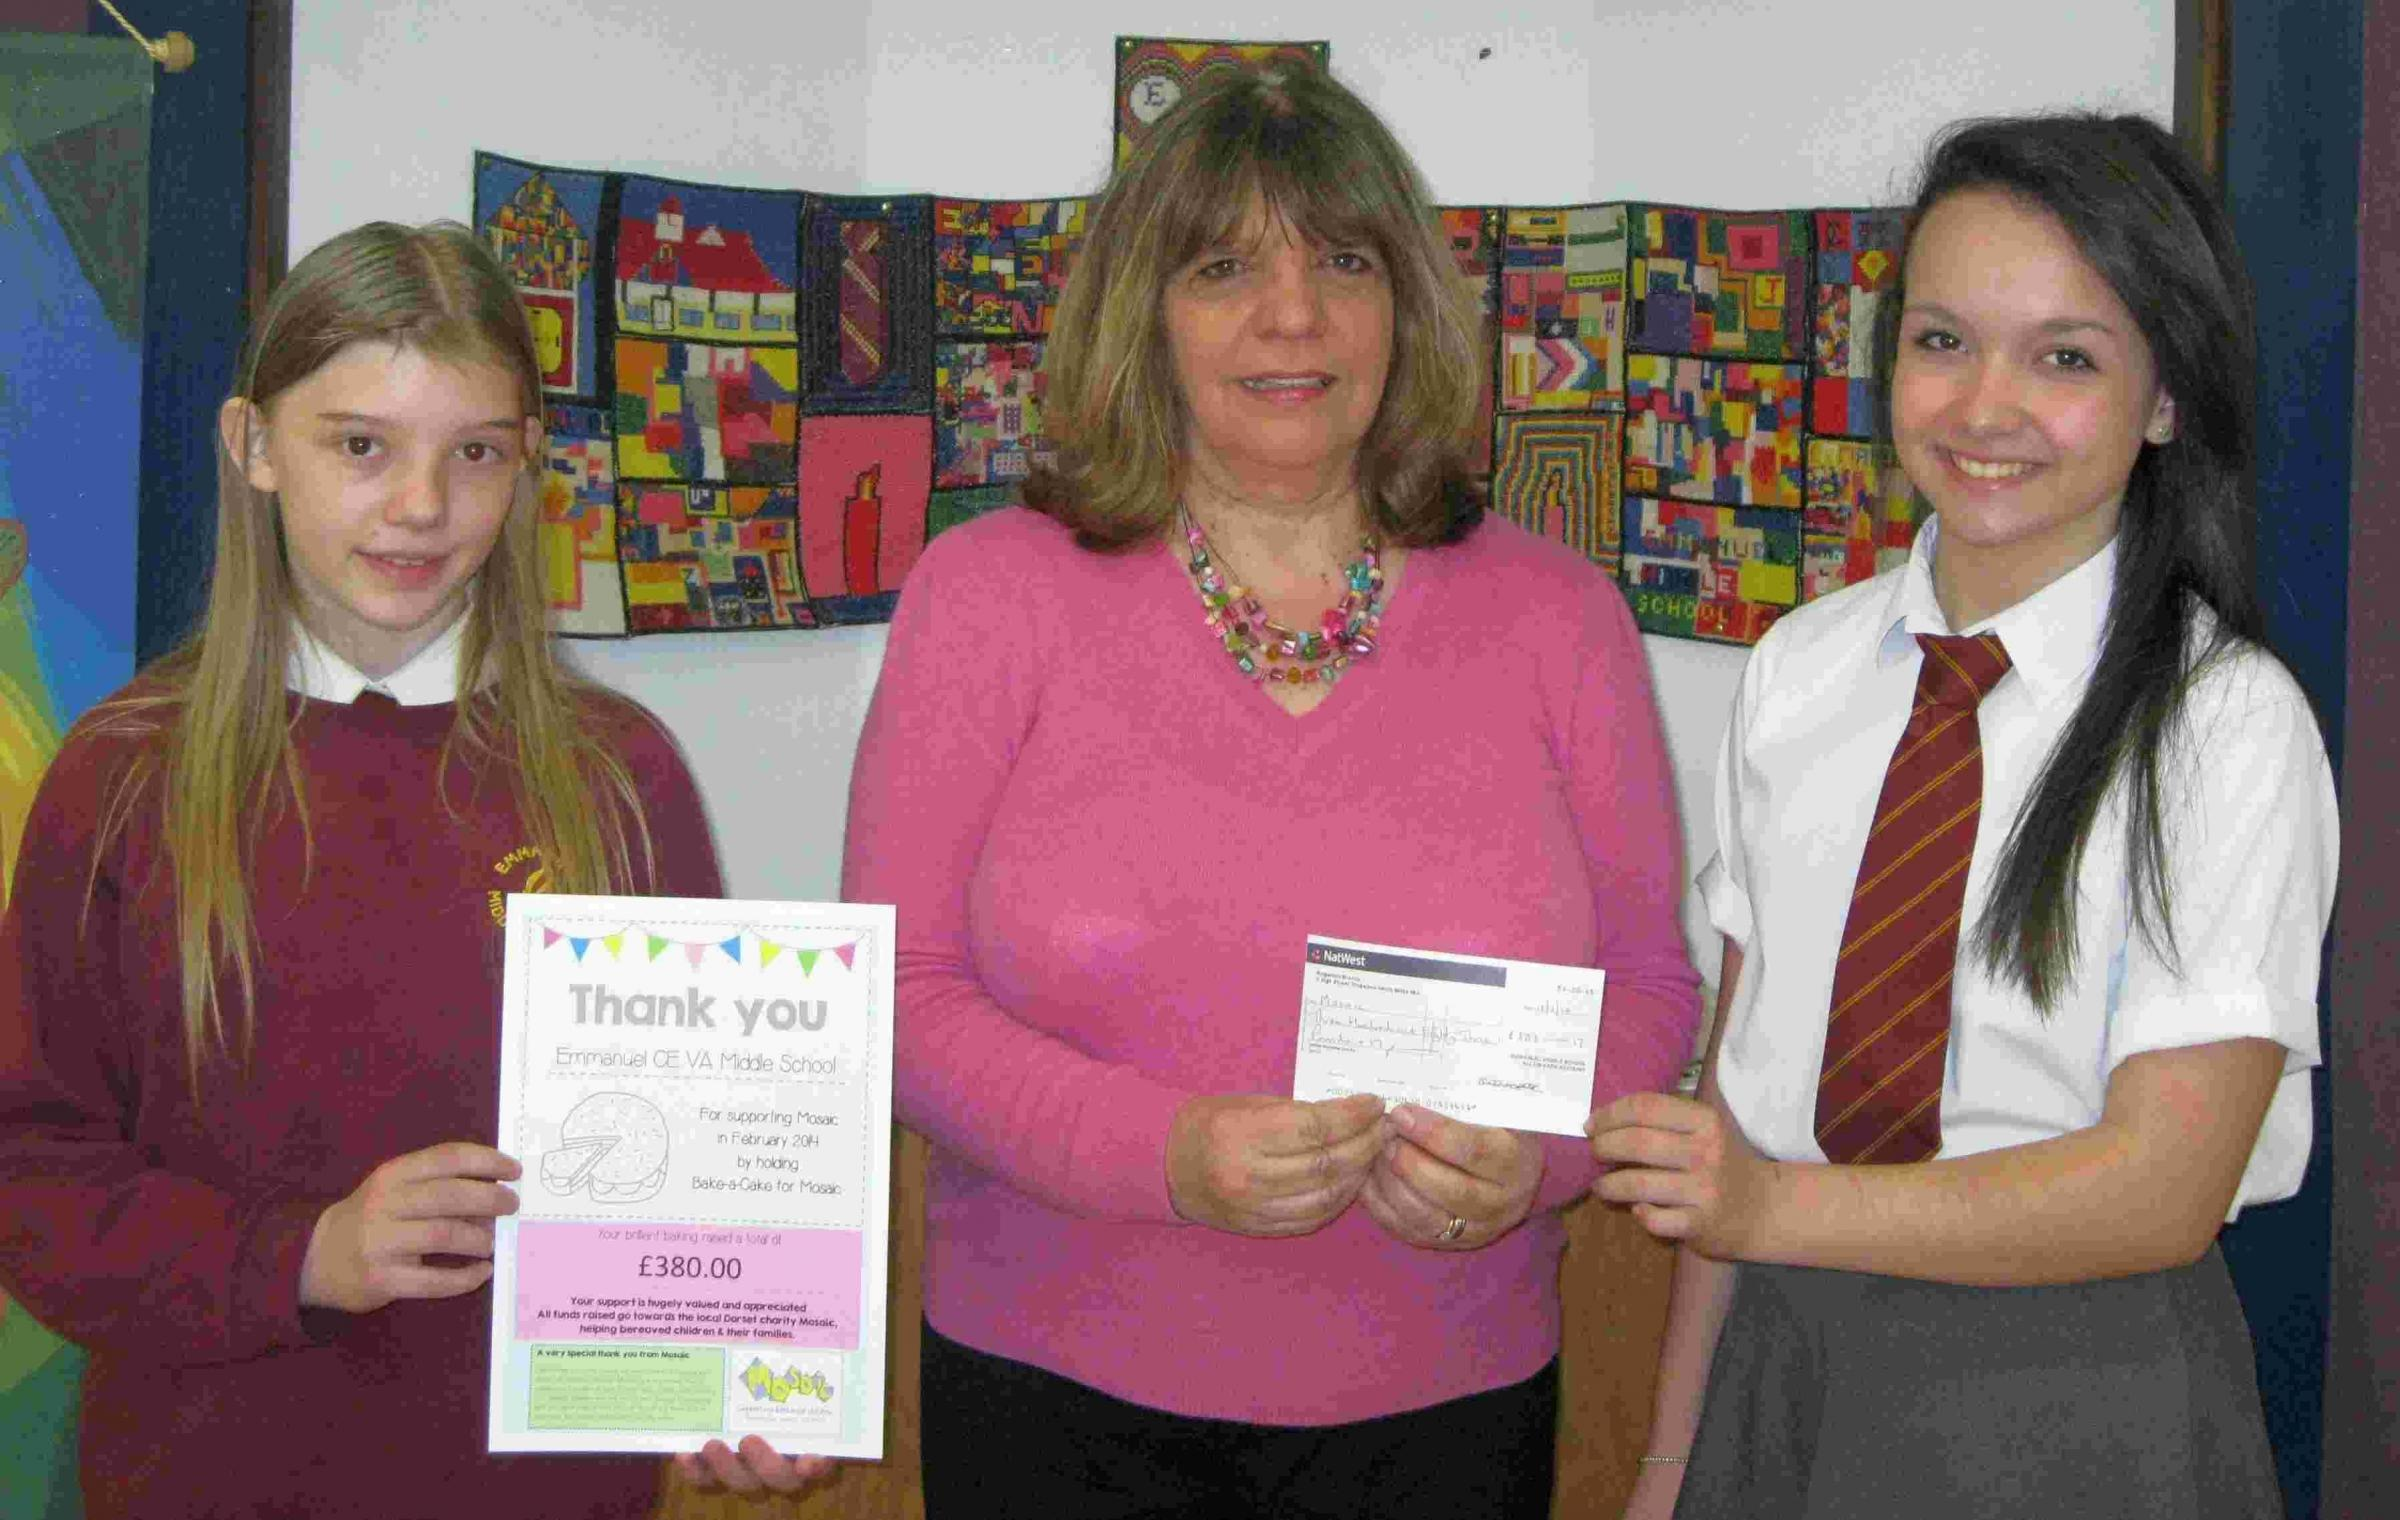 From left, Elise McNally, Margaret Hannibal and Elizabeth Wilson after a successful cake sale at Emmanuel School